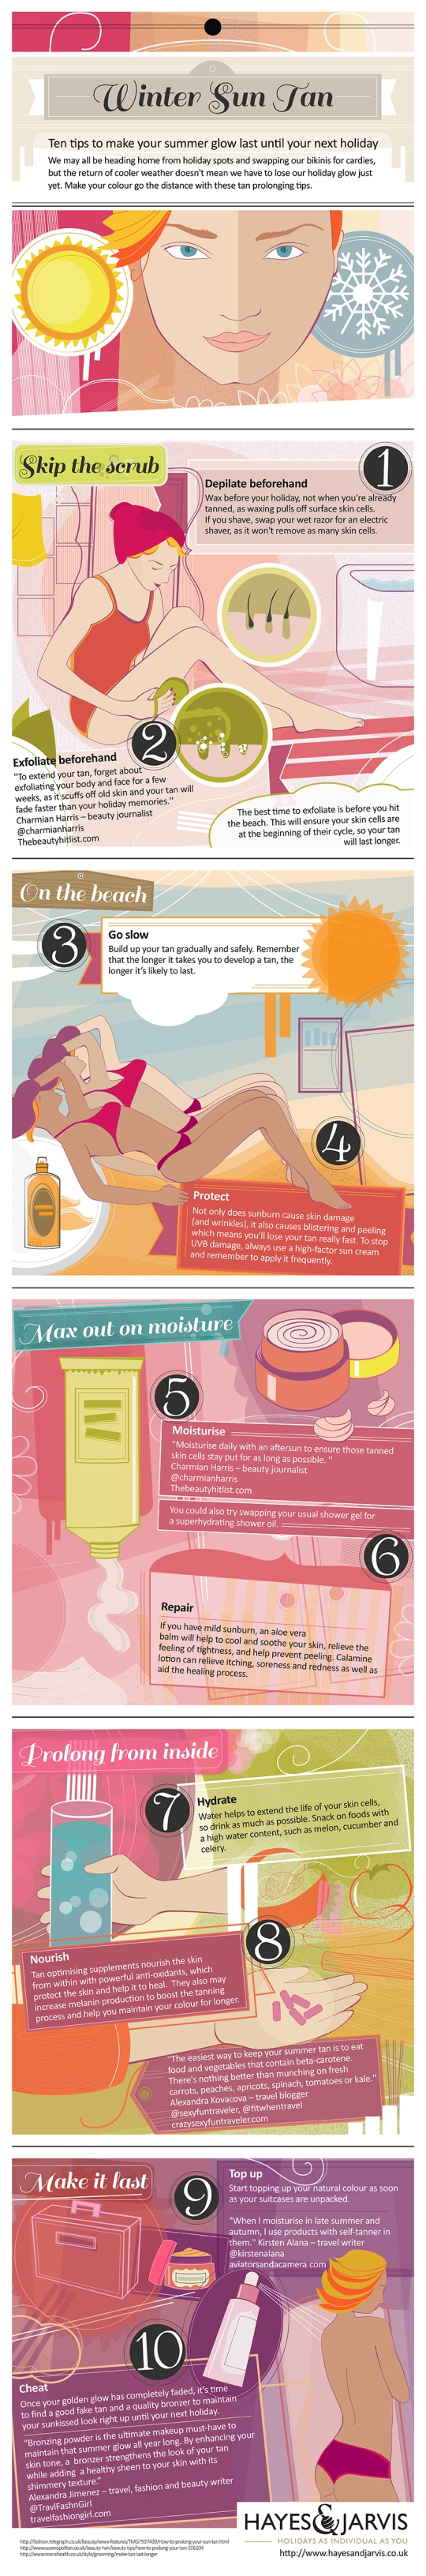 How to make your tan last